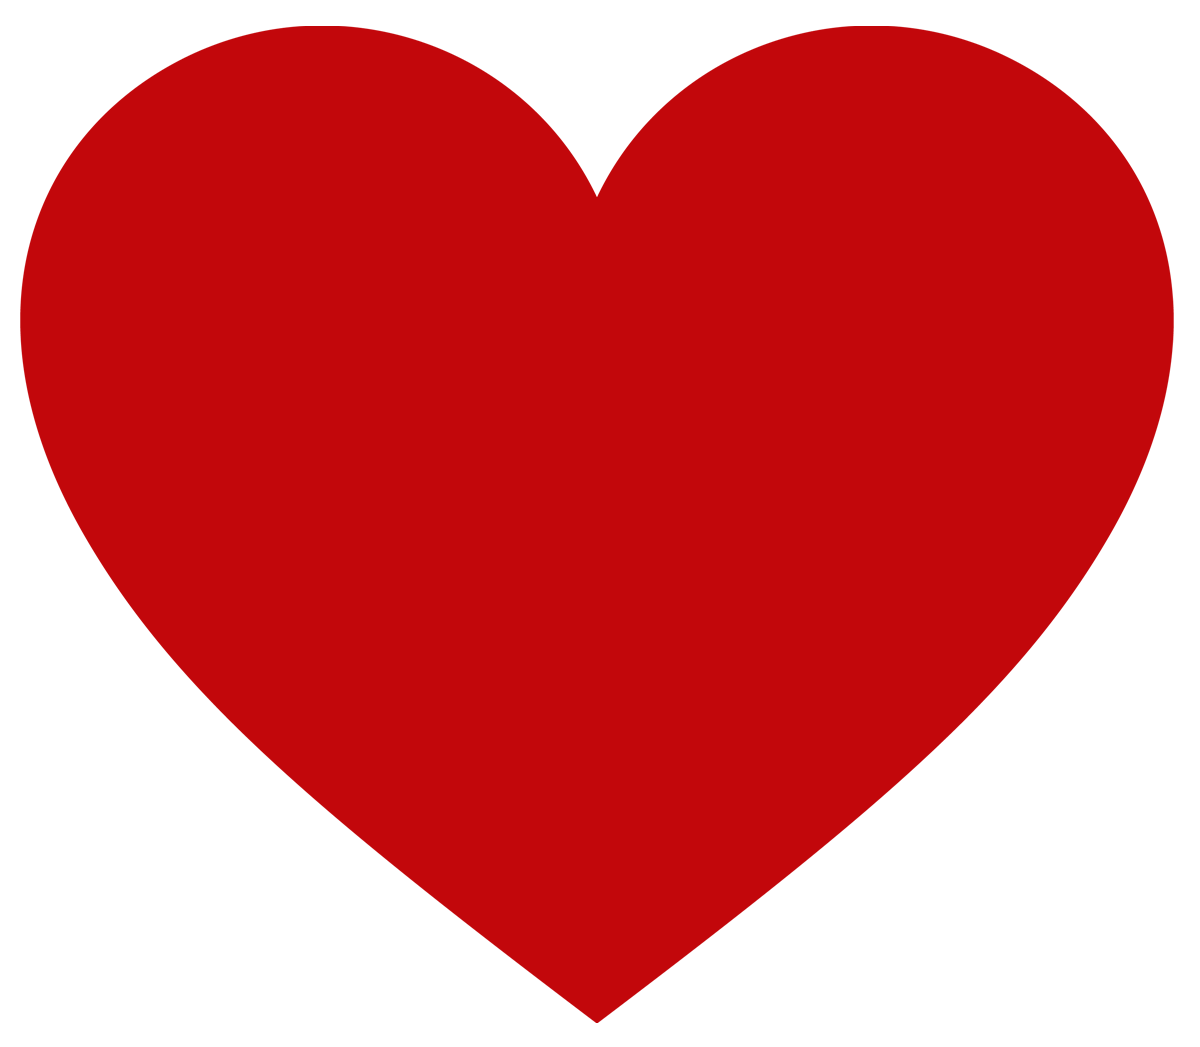 Love Clipart PNG - 77175